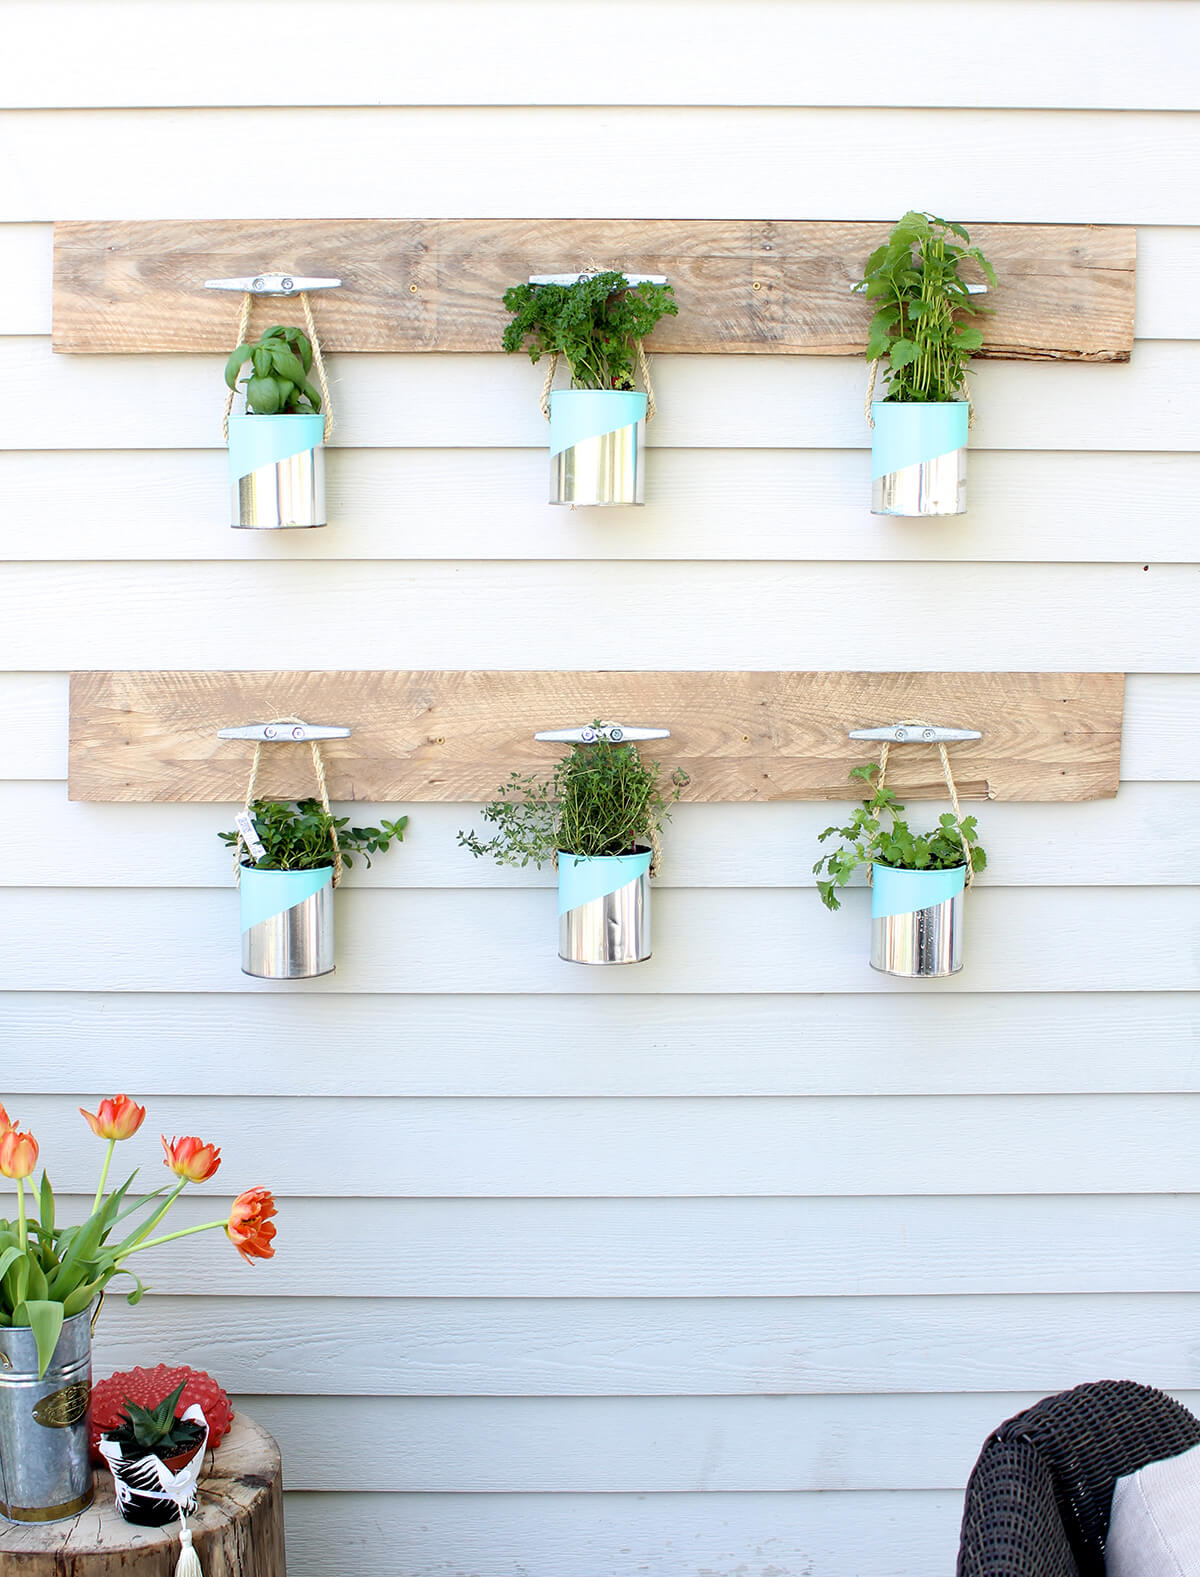 Recycled Buckets and Wooden Pallets